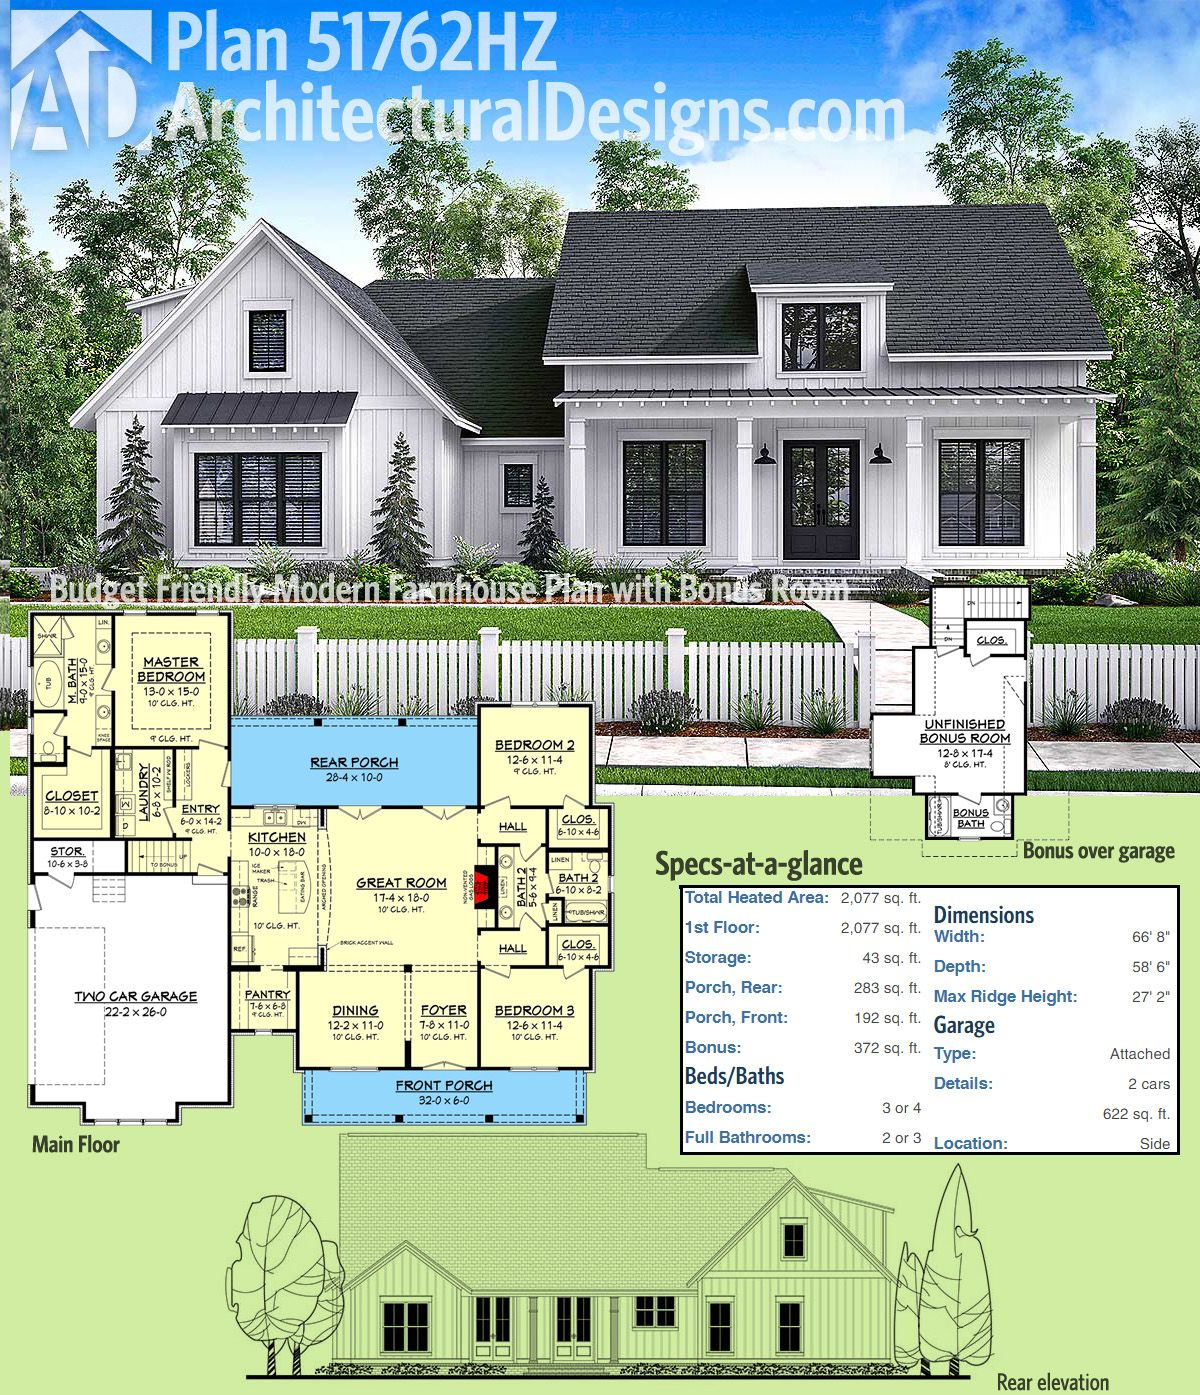 Plan 51762hz budget friendly modern farmhouse plan with for Architectural design house plans